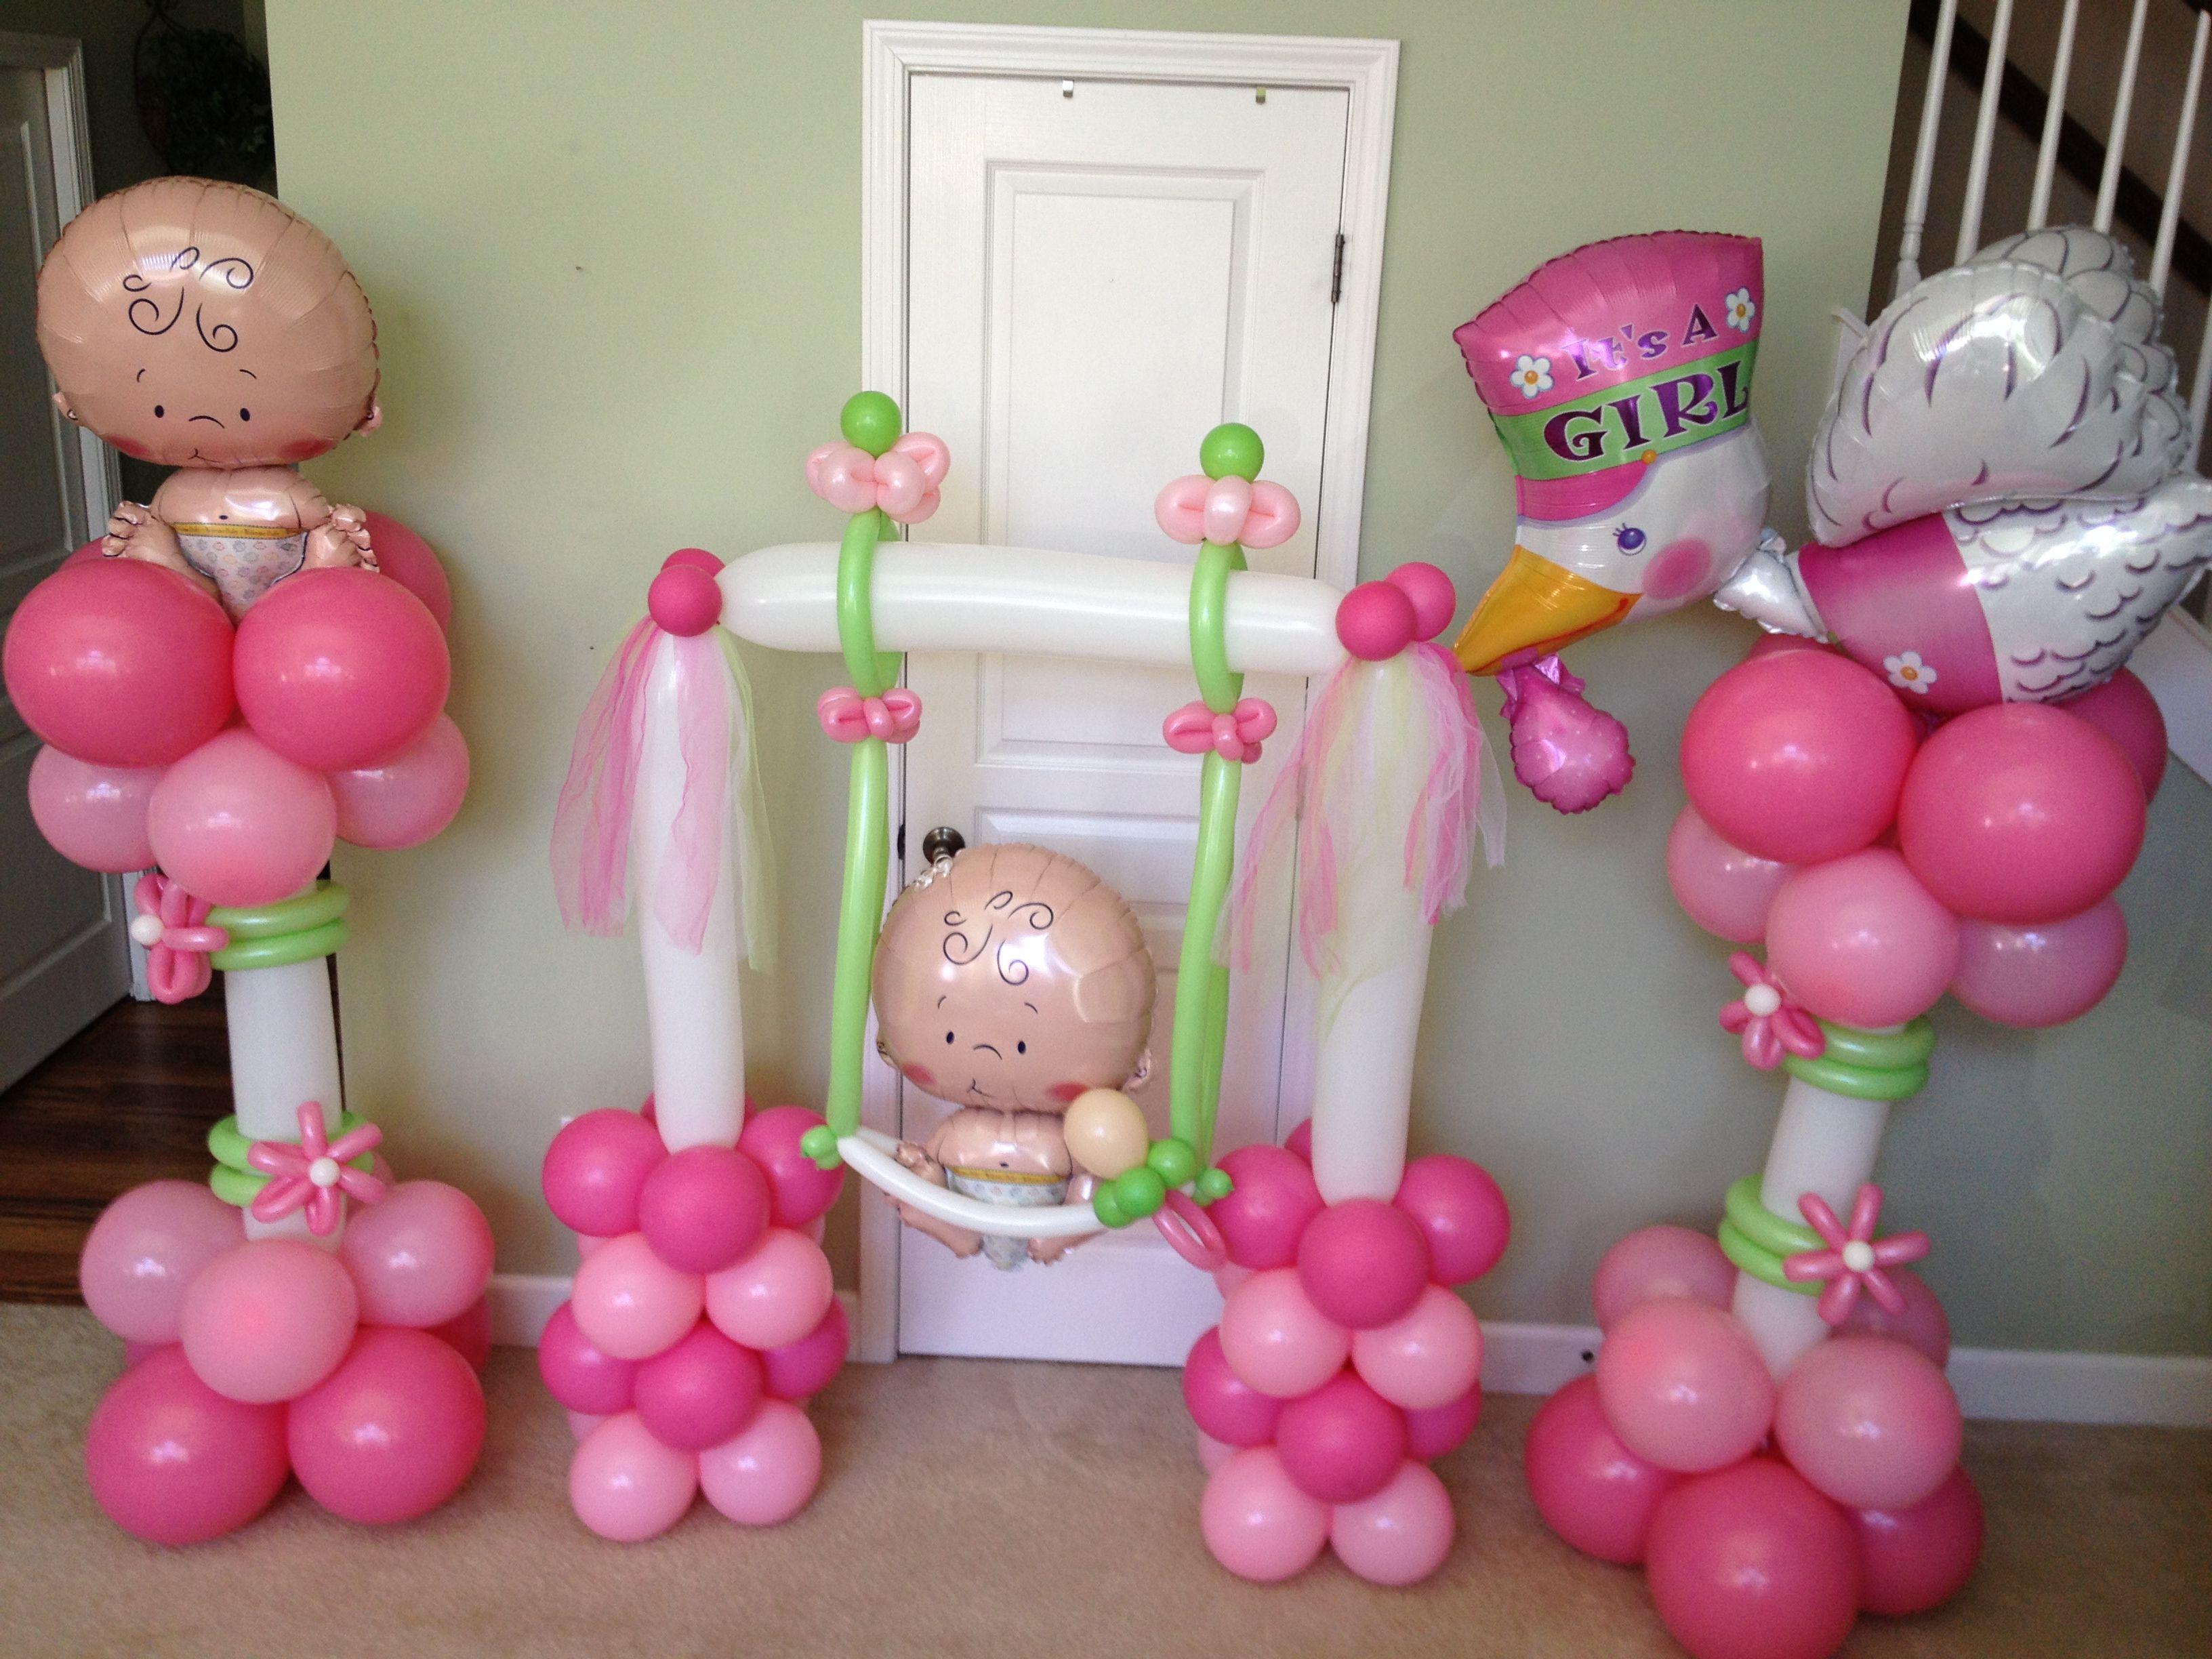 Baby girl balloon decorations baby shower balloons for Baby girl shower decoration ideas